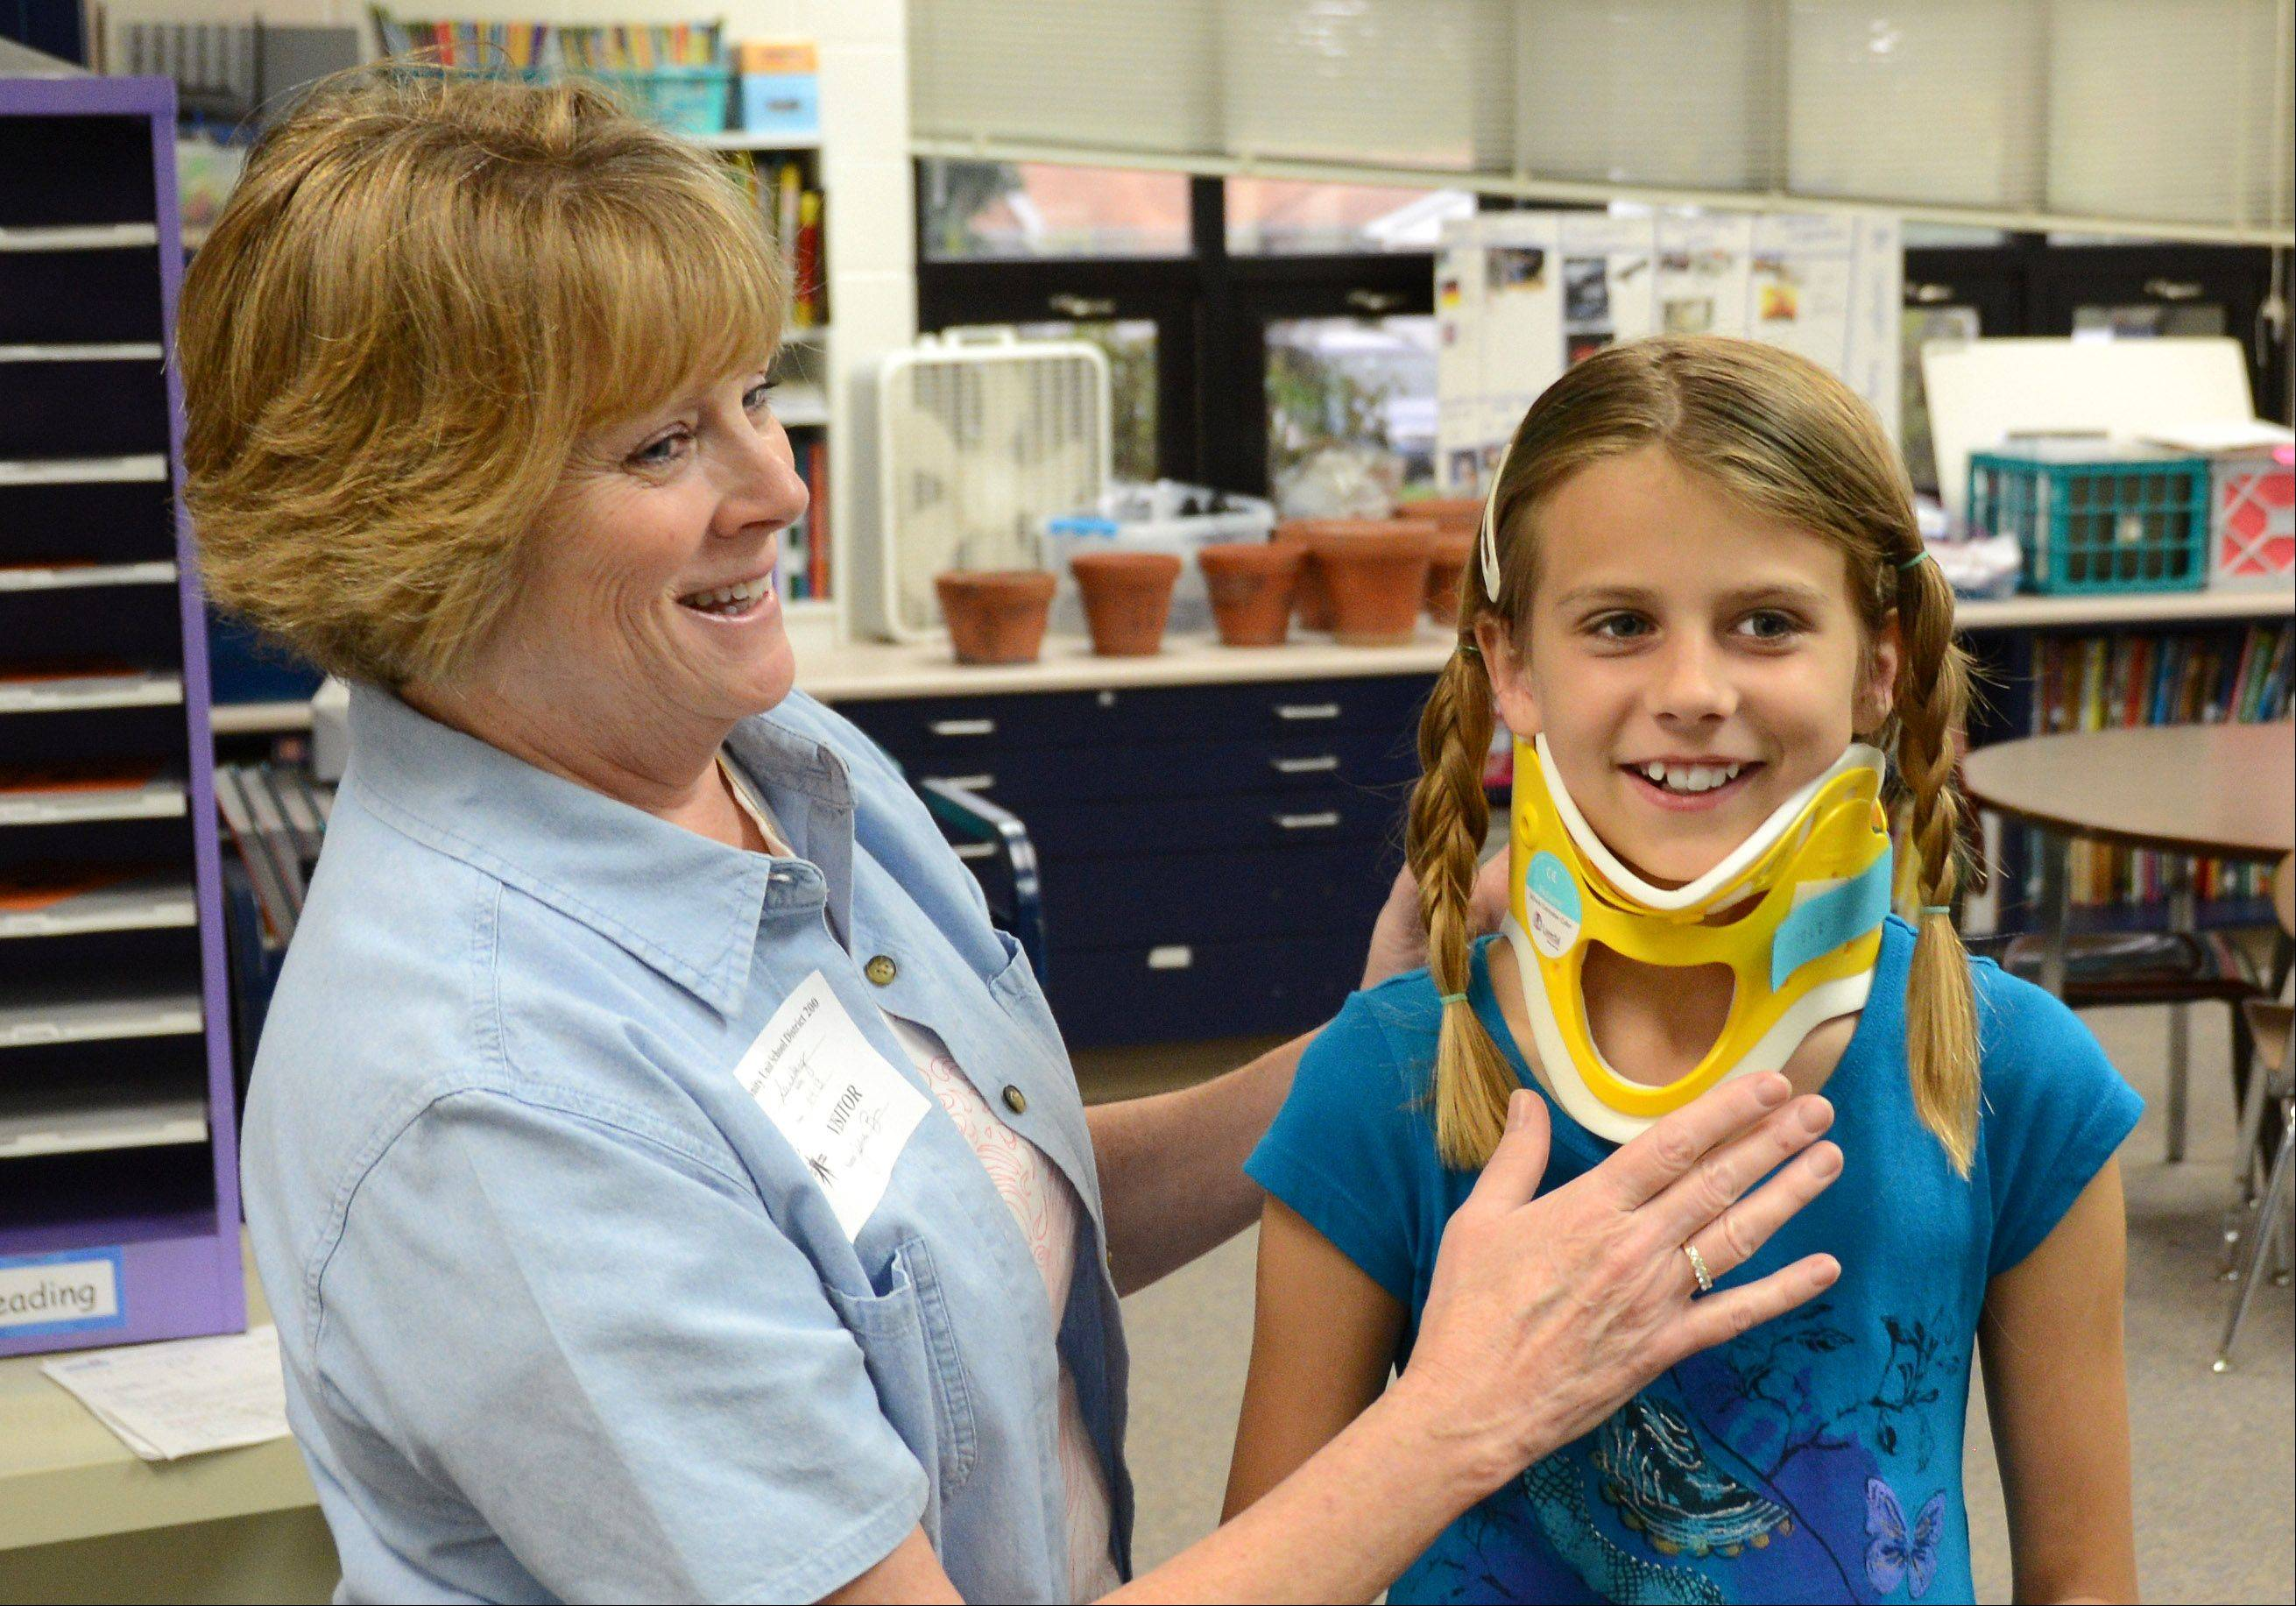 Fifth-grader Alena Loquorcio tries on a neck brace with the help of Central DuPage Hospital nurse Julie Bernardo. Her uncle wears a similar brace so Alena wanted to �see how he feels.�